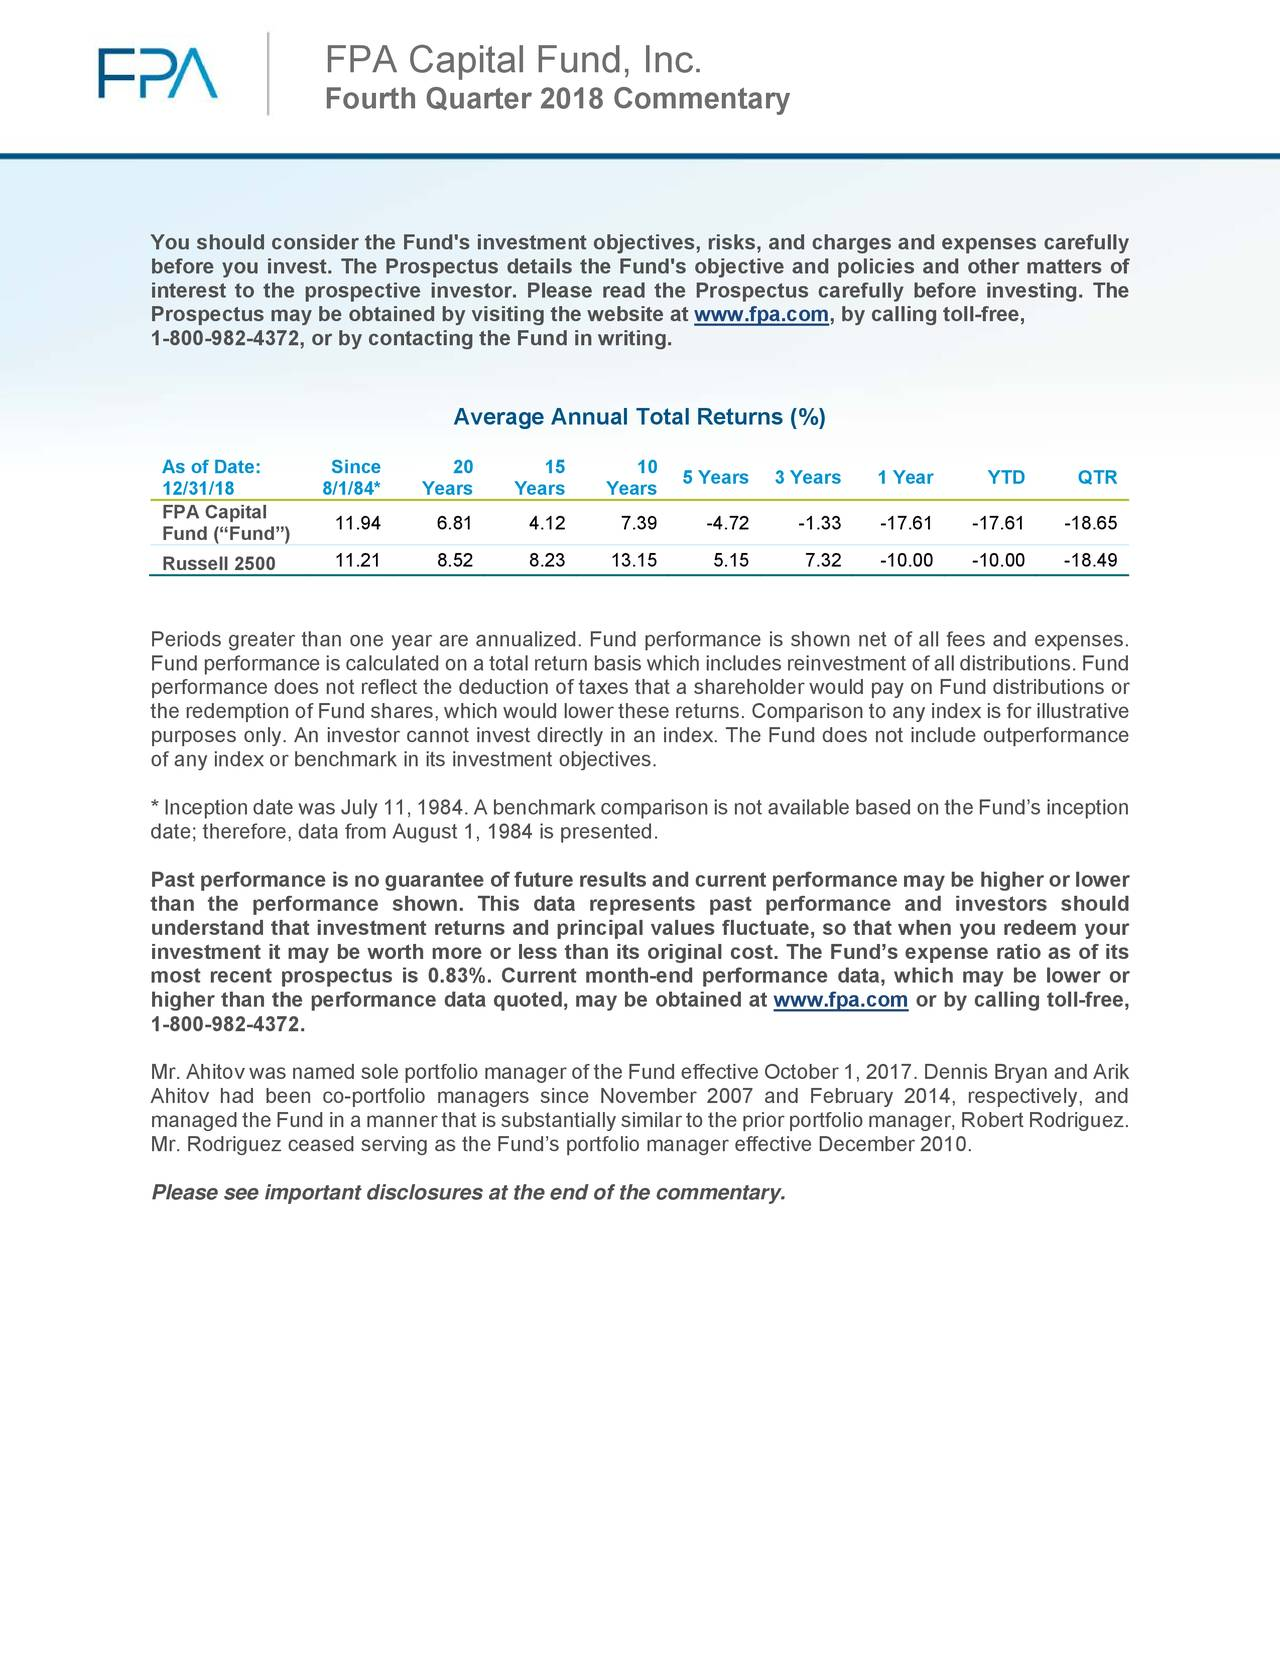 """Fourth Quarter 2018 Commentary You should consider the Fund's investment objectives, risks, and charges and expenses carefully before you invest. The Prospectus details the Fund's objective and policies and other matters of interest to the prospective investor. Please read the Prospectus carefully before investing. The Prospectus may be obtained by visiting the website at www.fpa.com, by calling toll-free, 1-800-982-4372, or by contacting the Fund in writing. Average Annual Total Returns (%) As of Date: Since 20 15 10 12/31/18 8/1/84* Years Years Years 5 Years 3 Years 1 Year YTD QTR FPA Capital 11.94 6.81 4.12 7.39 -4.72 -1.33 -17.61 -17.61 -18.65 Fund (""""Fund"""") Russell 2500 11.21 8.52 8.23 13.15 5.15 7.32 -10.00 -10.00 -18.49 Periods greater than one year are annualized. Fund performance is shown net of all fees and expenses. Fund performance is calculated on a total return basis which includes reinvestment of all distributions. Fund performance does not reflect the deduction of taxes that a shareholder would pay on Fund distributions or the redemption of Fund shares, which would lower these returns. Comparison to any index is for illustrative purposes only. An investor cannot invest directly in an index. The Fund does not include outperformance of any index or benchmark in its investment objectives. * Inception date was July 11, 1984. A benchmark comparison is not available based on the Fund's inception date; therefore, data from August 1, 1984 is presented. Past performance is no guarantee of future results and current performance may be higher or lower than the performance shown. This data represents past performance and investors should understand that investment returns and principal values fluctuate, so that when you redeem your investment it may be worth more or less than its original cost. The Fund's expense ratio as of its most recent prospectus is 0.83%. Current month-end performance data, which may be lower or higher than the performance data quoted, may """